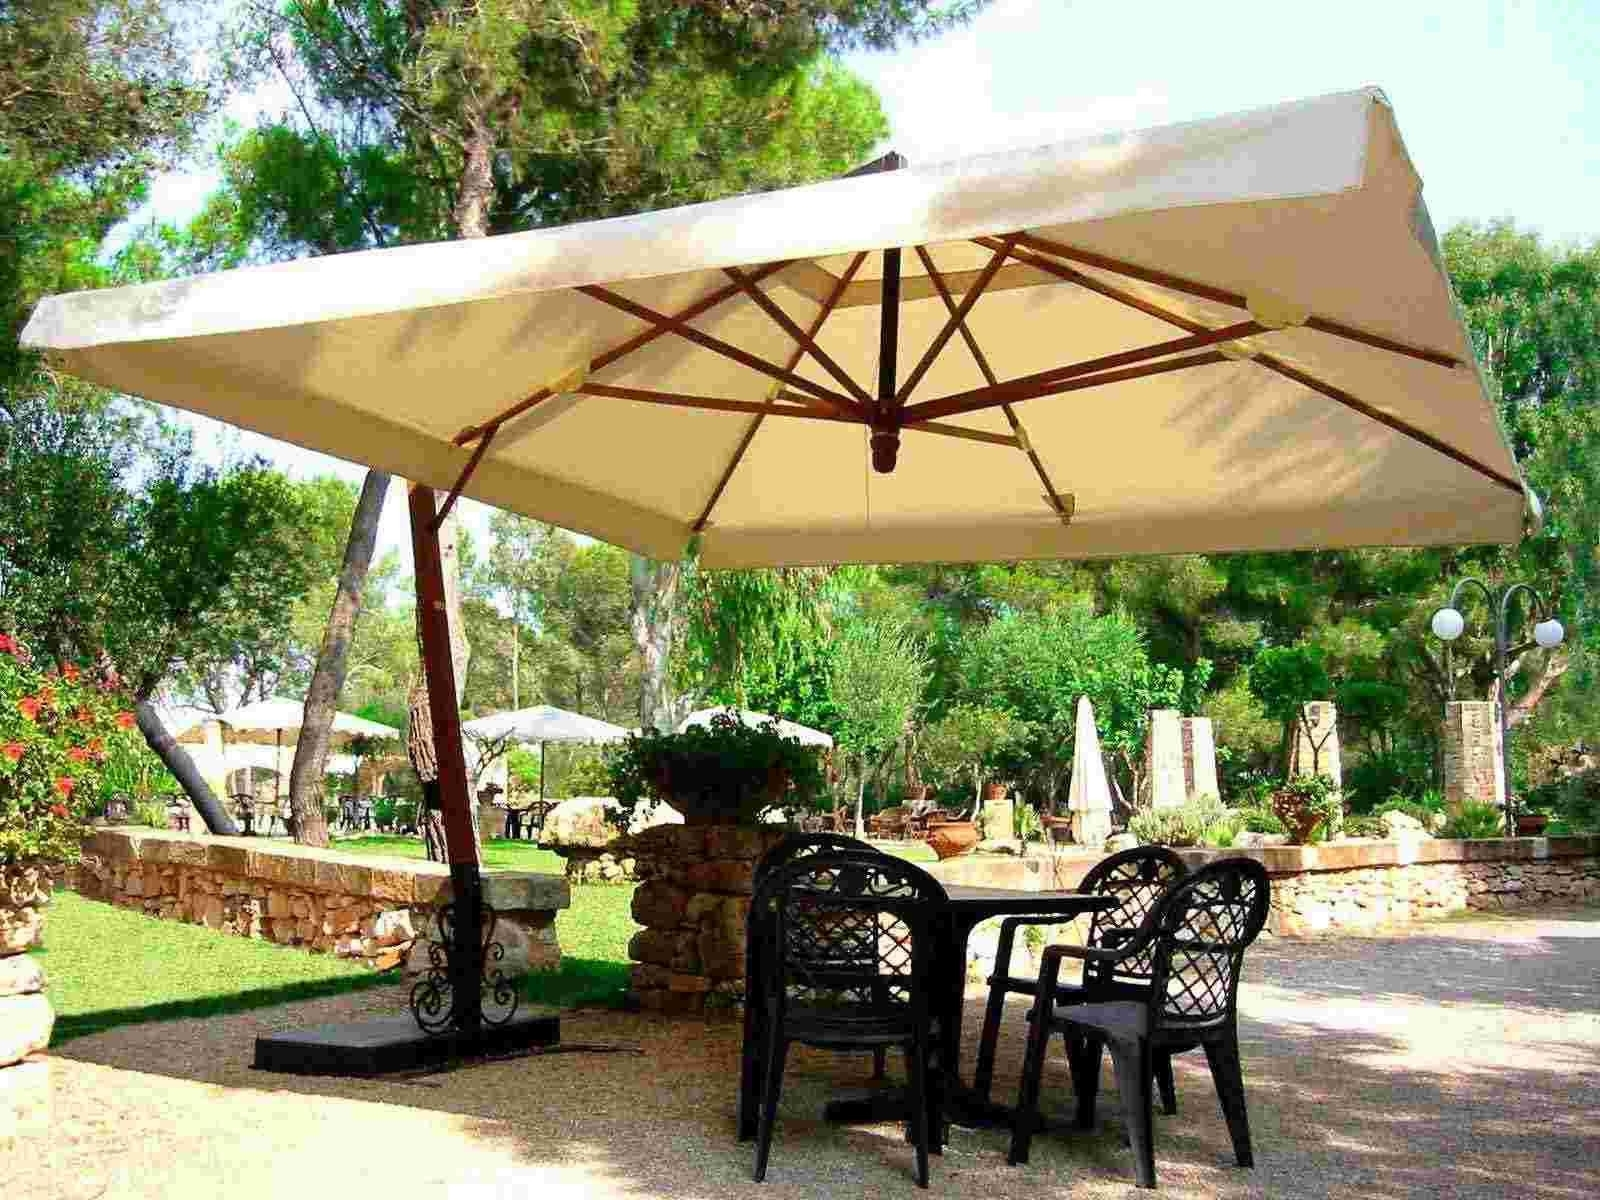 50 Patio Umbrella With Solar Lights Ke6a – Mcnamaralaw For Famous Rectangle Patio Umbrellas (View 18 of 20)